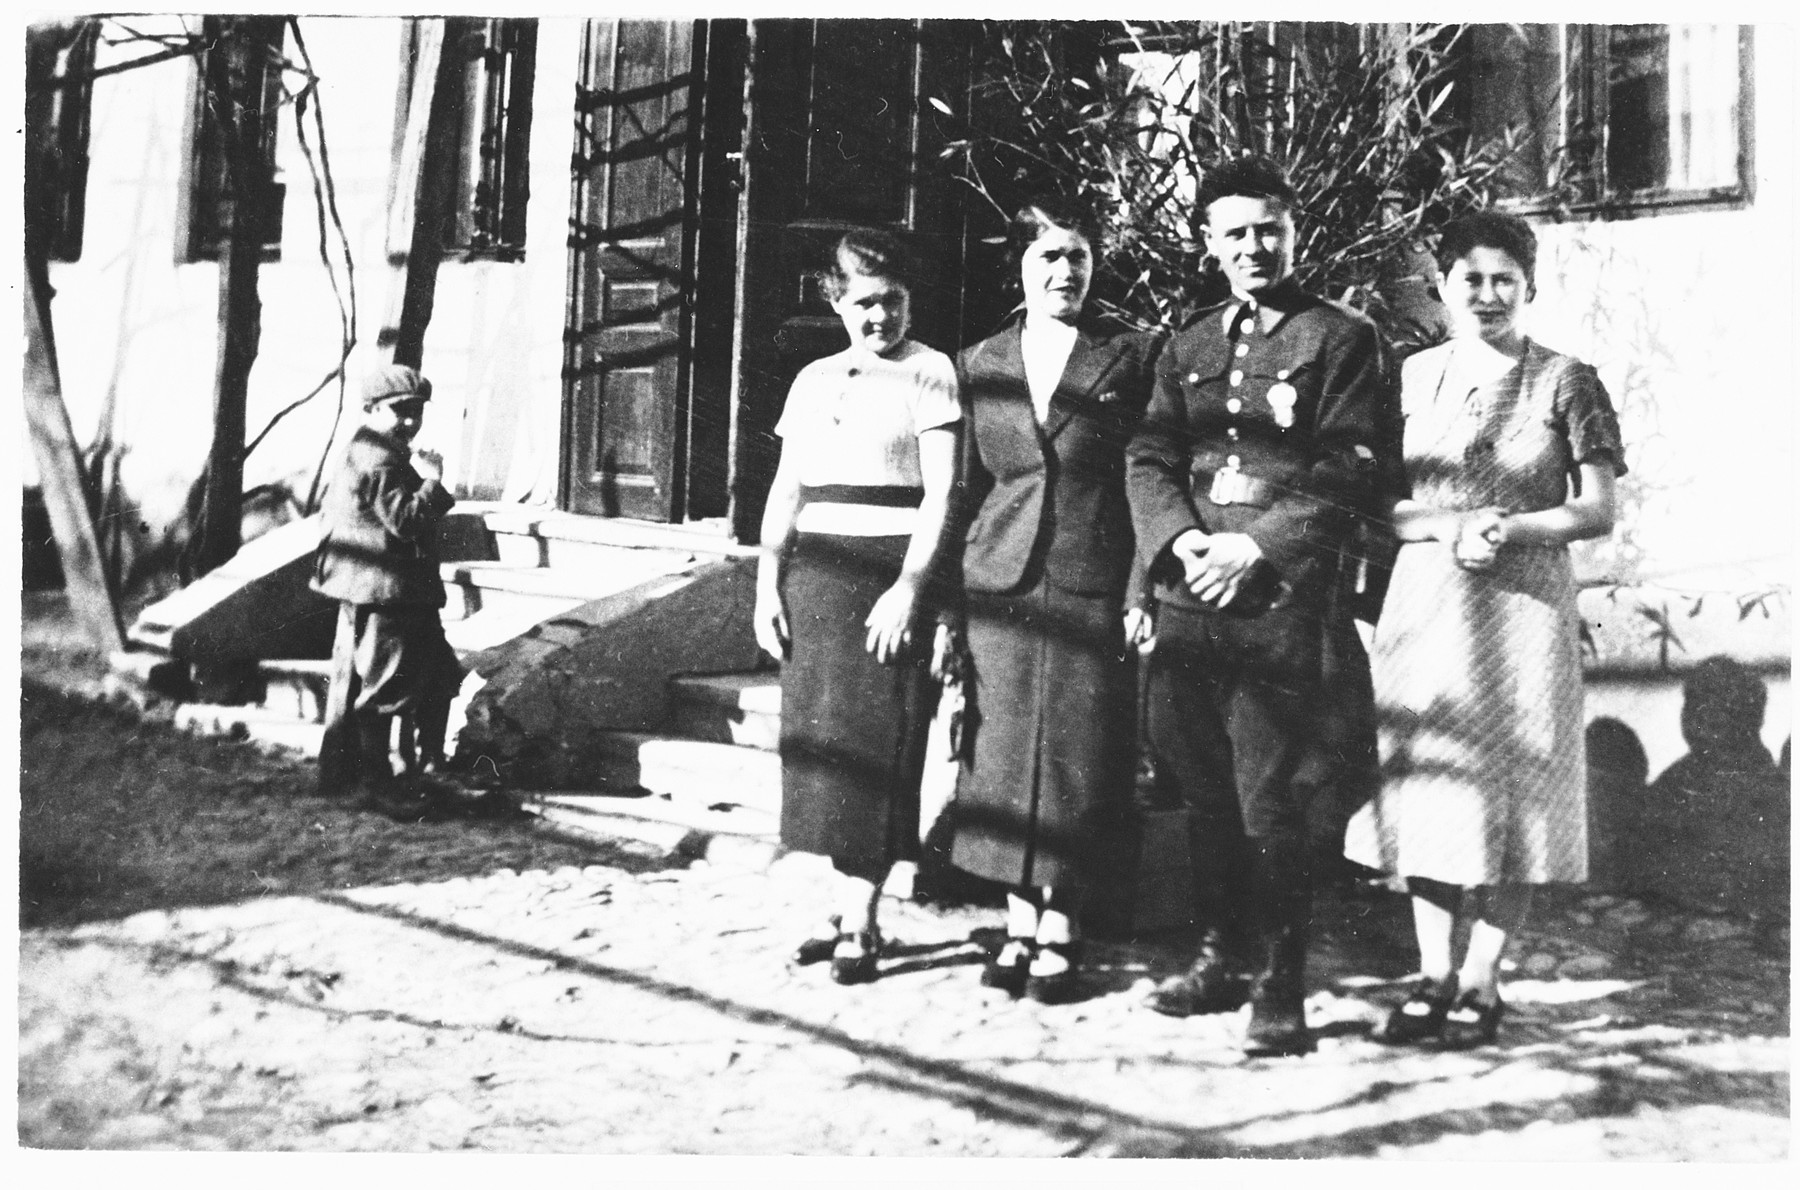 Josef Weinberger poses in his army uniform with his girlfriend and two sisters outside the family's house in Mukachevo.